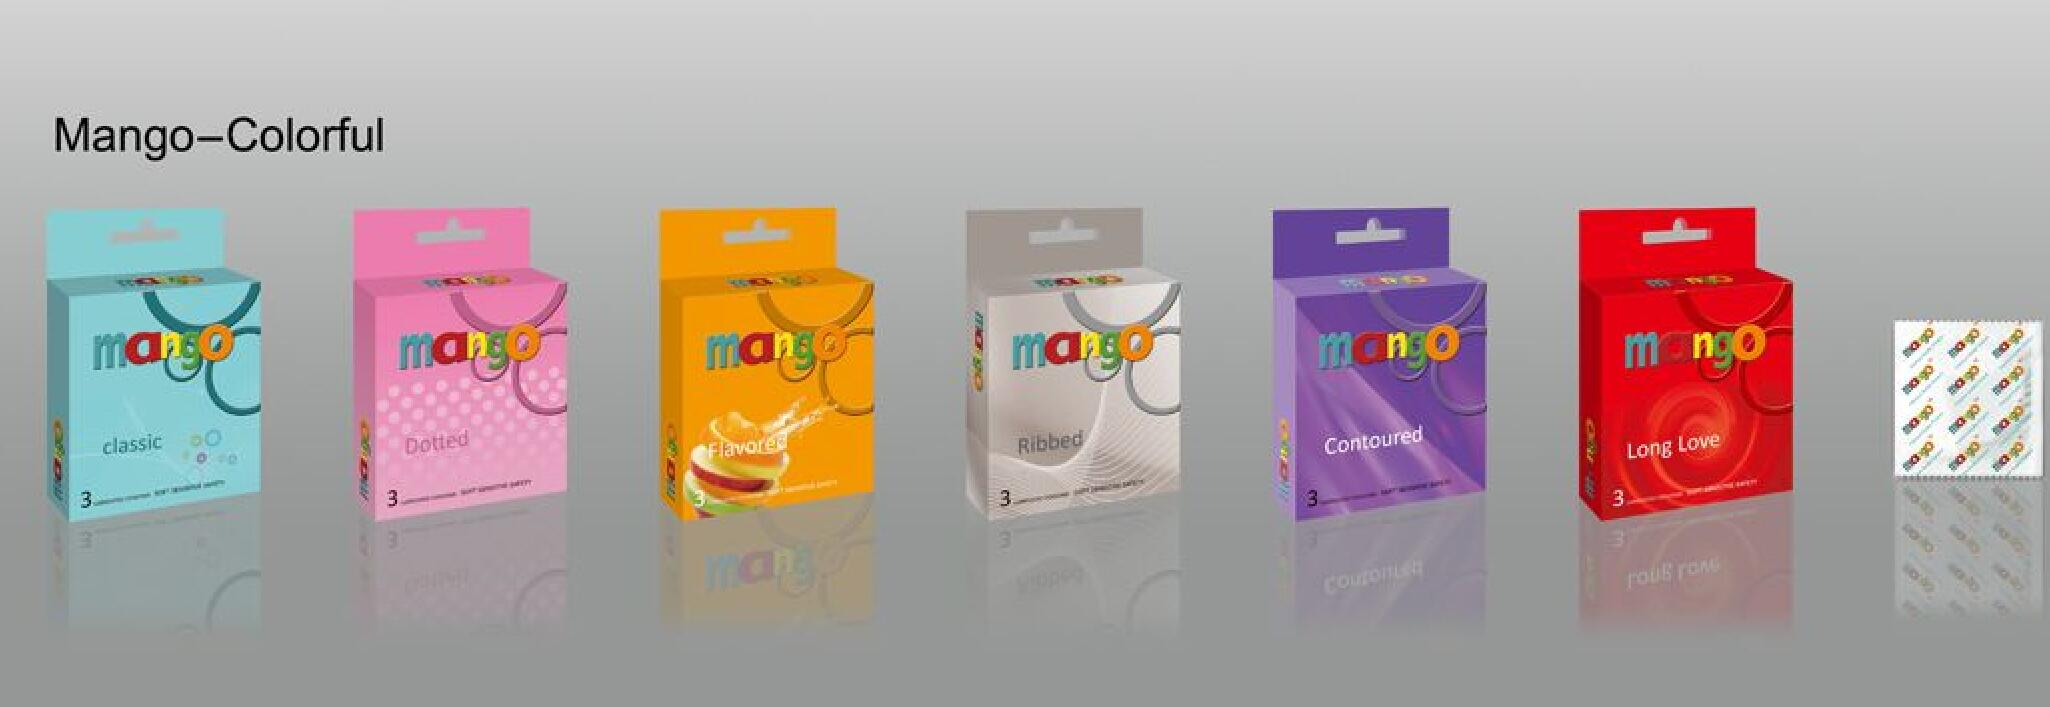 mango-brand-condom-colorful-design-for-your-option